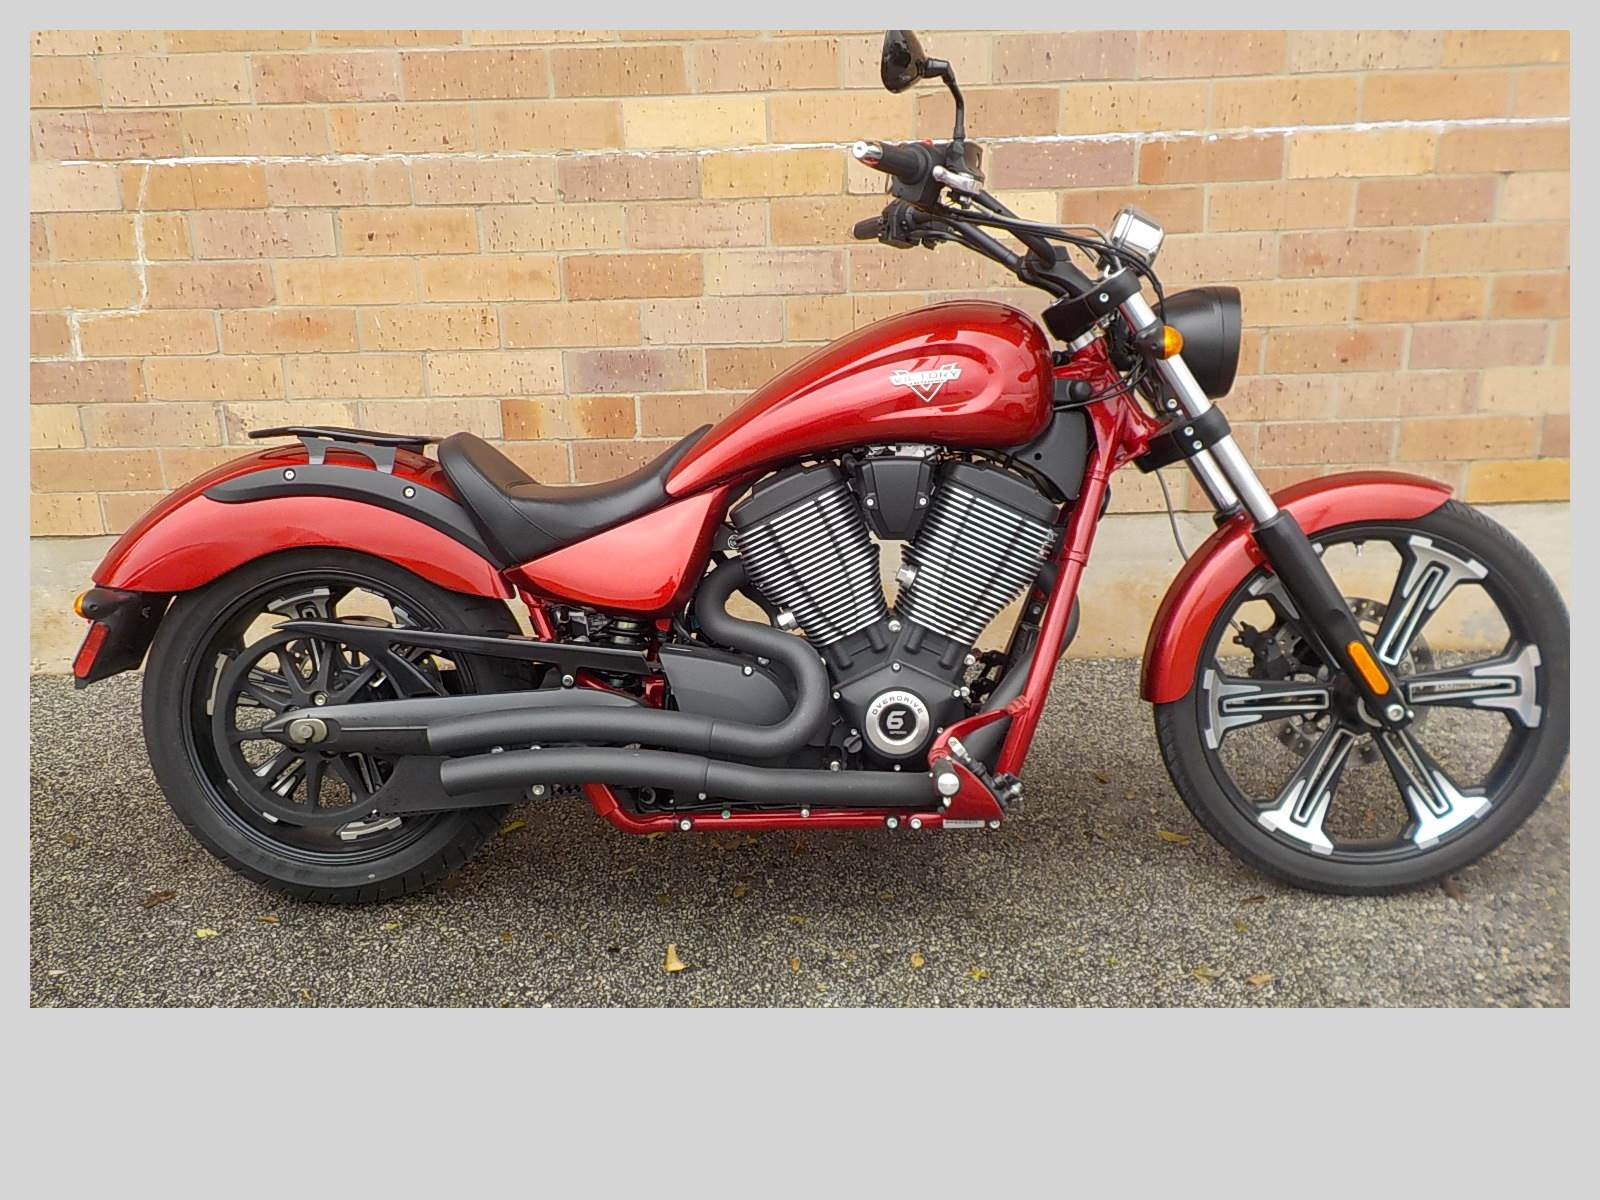 2016 Victory Vegas for sale 34892